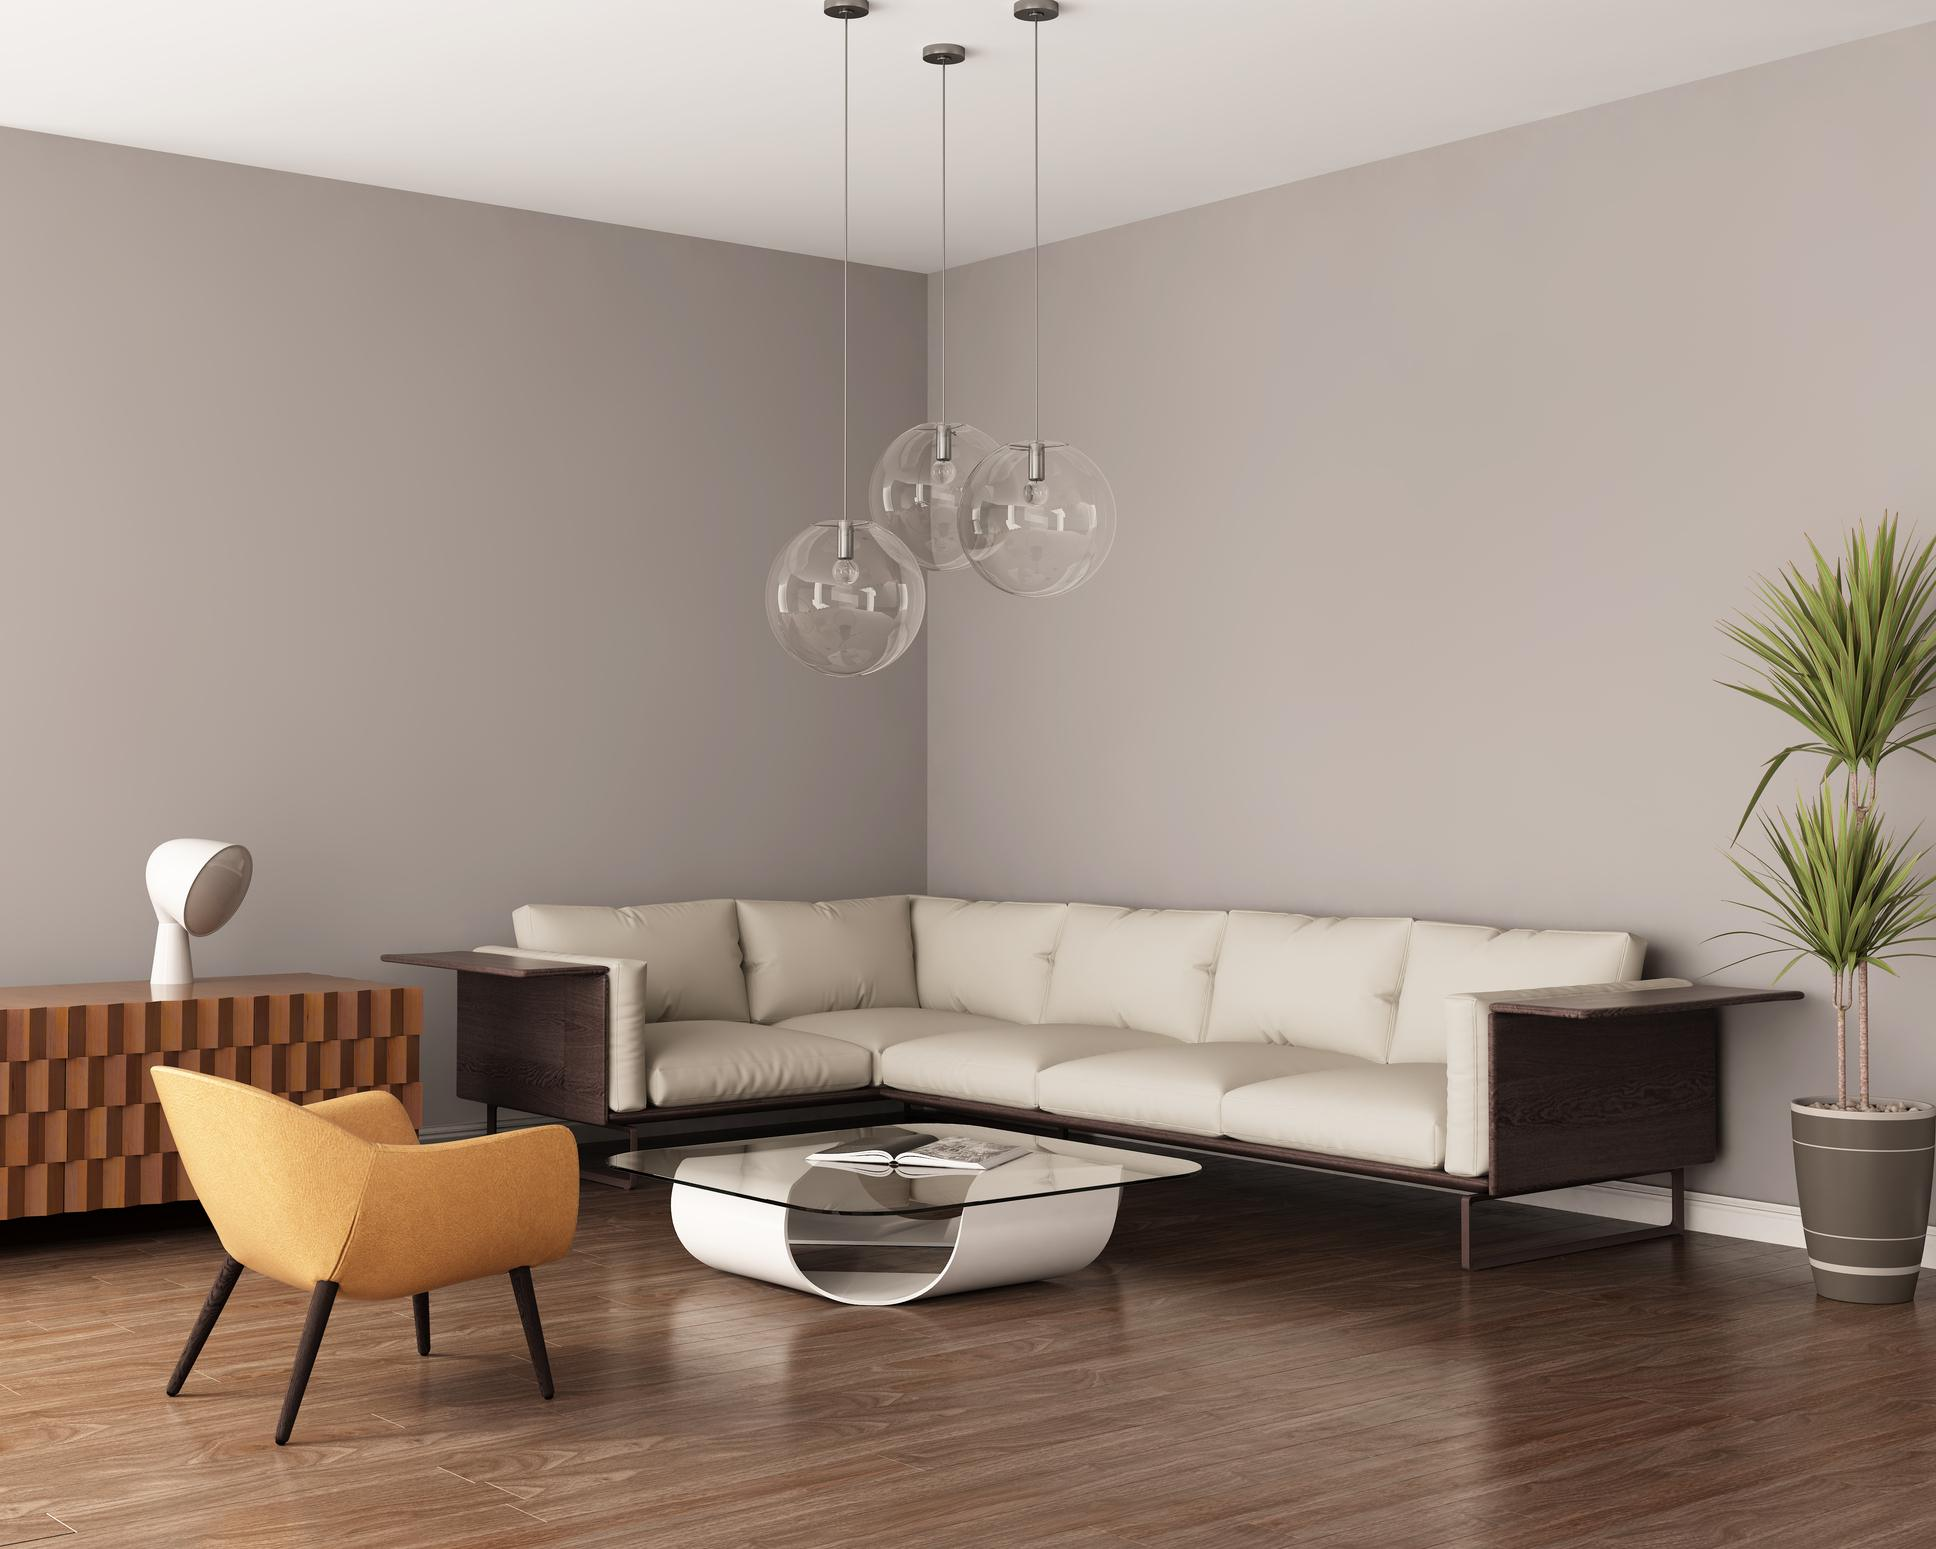 Grey living room with a leather sofa and bamboo flooring